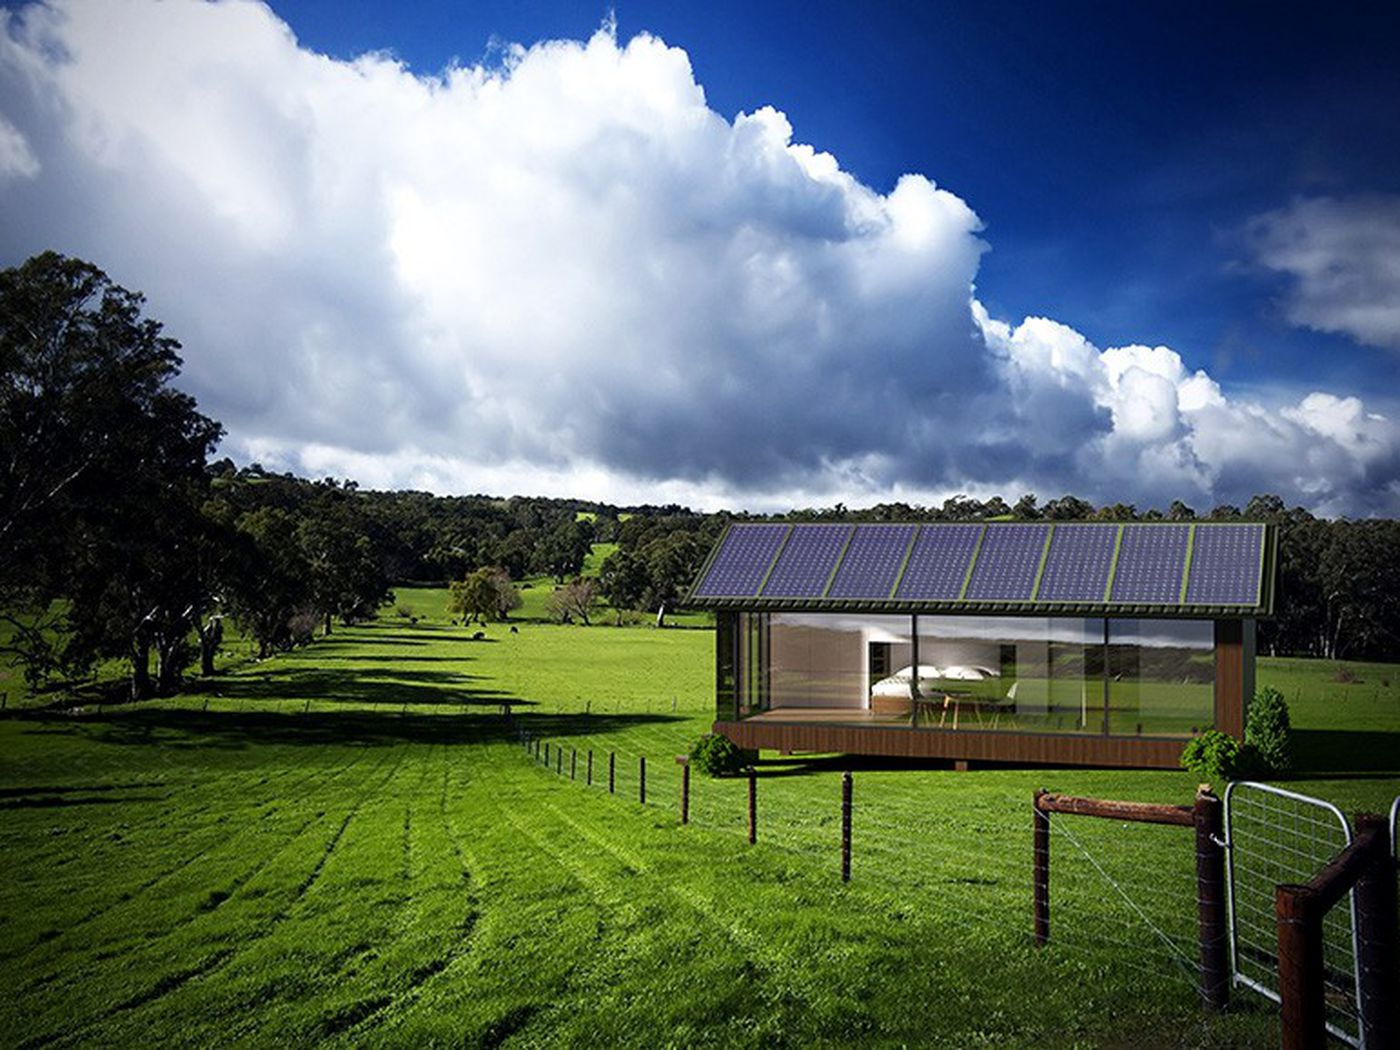 prefab tiny home sustainable and 3d printed offers idyllic high prefab tiny home sustainable and 3d printed offers idyllic high tech living curbed